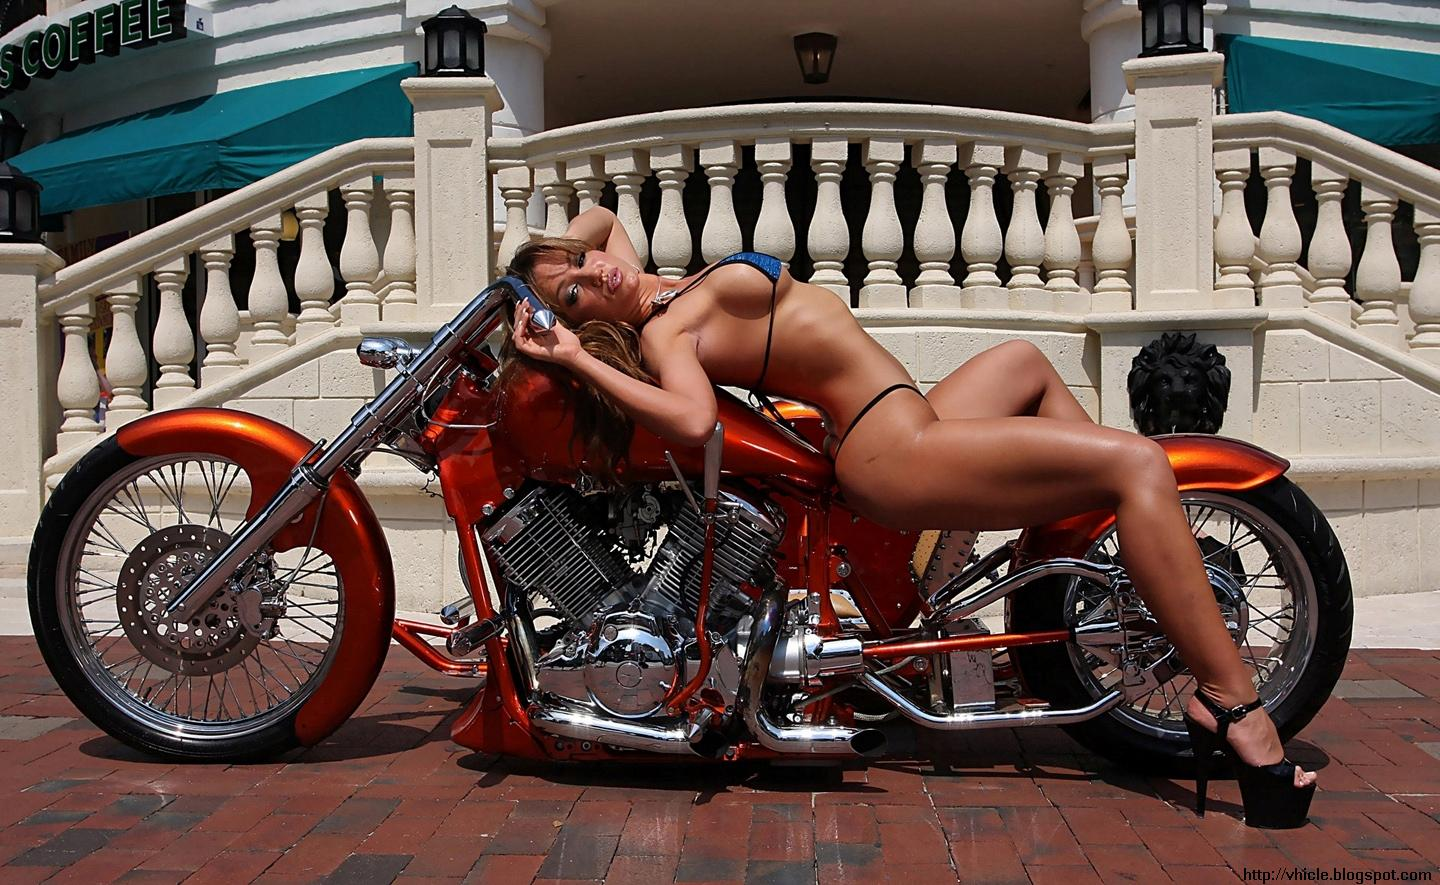 free naked girls on bike hd wallpapers